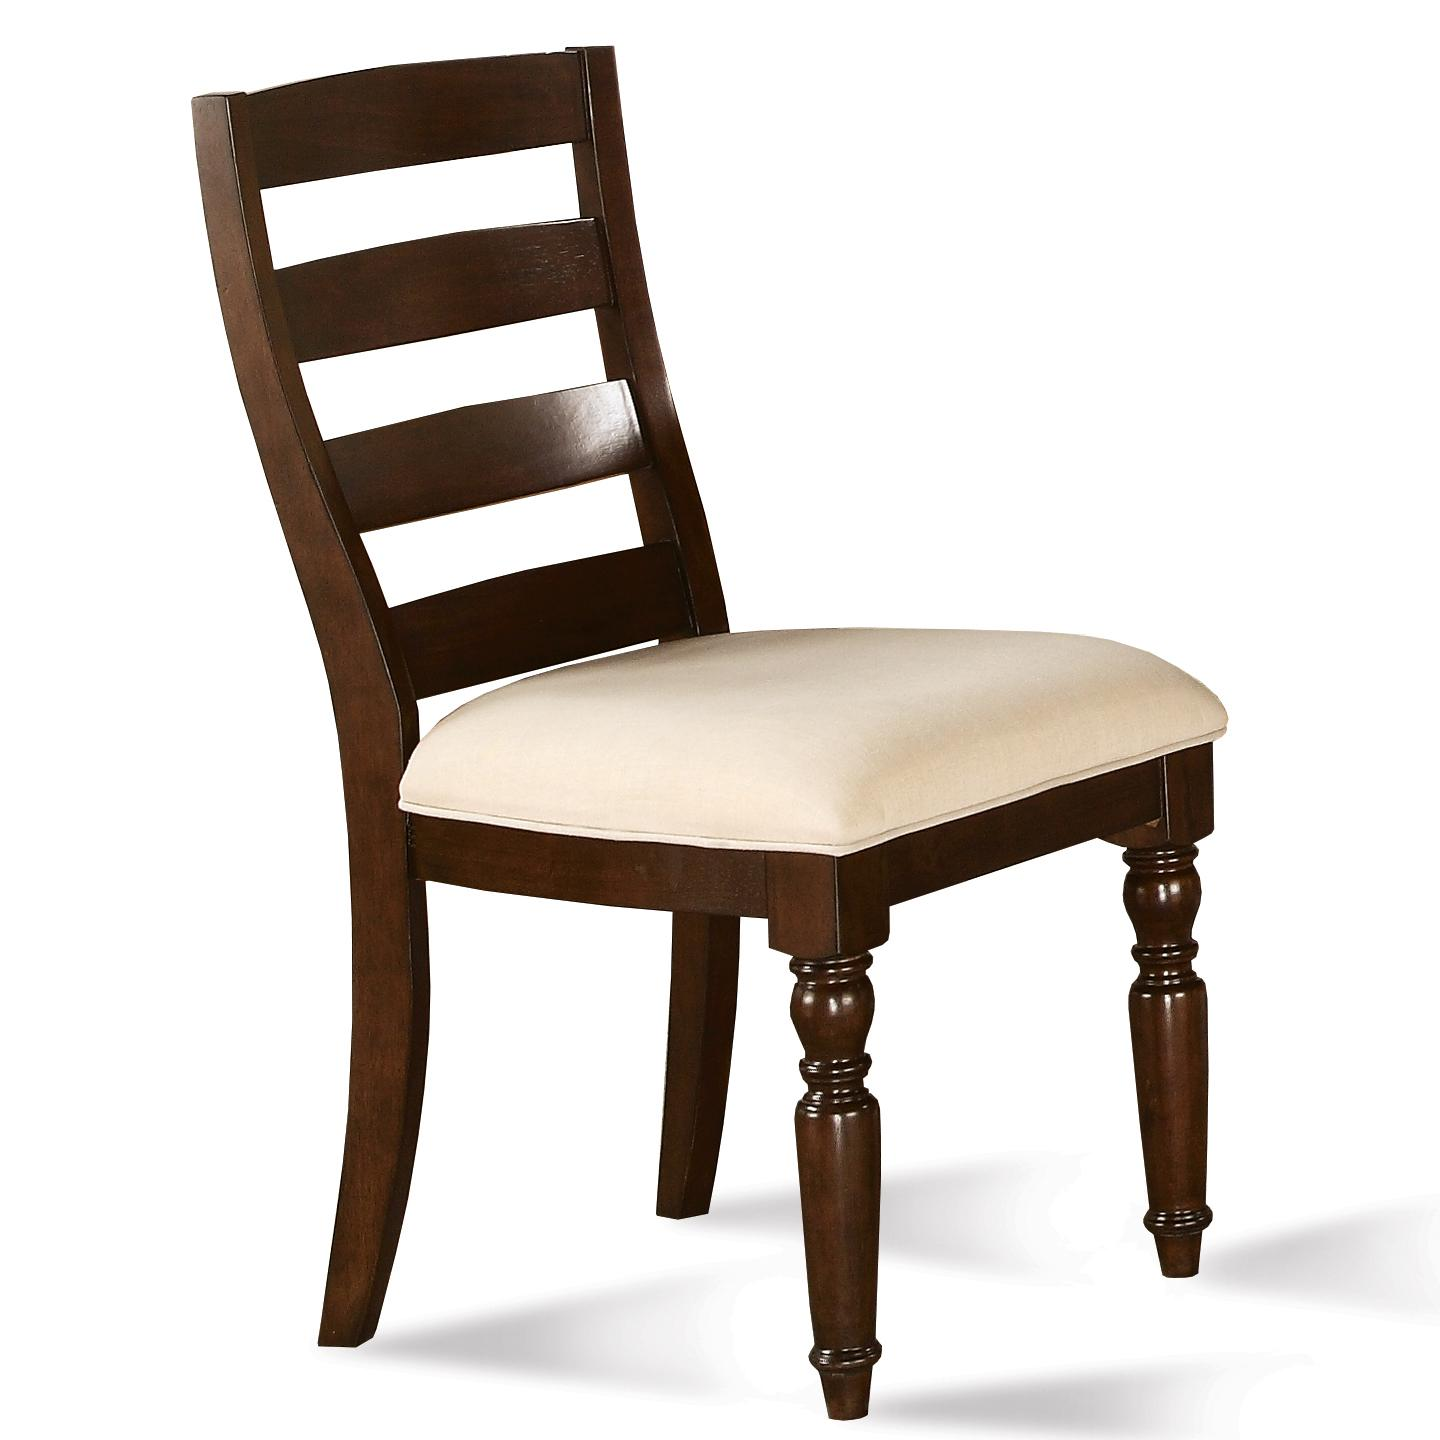 Riverside Furniture Castlewood Dining Side Chair - Item Number: 33592